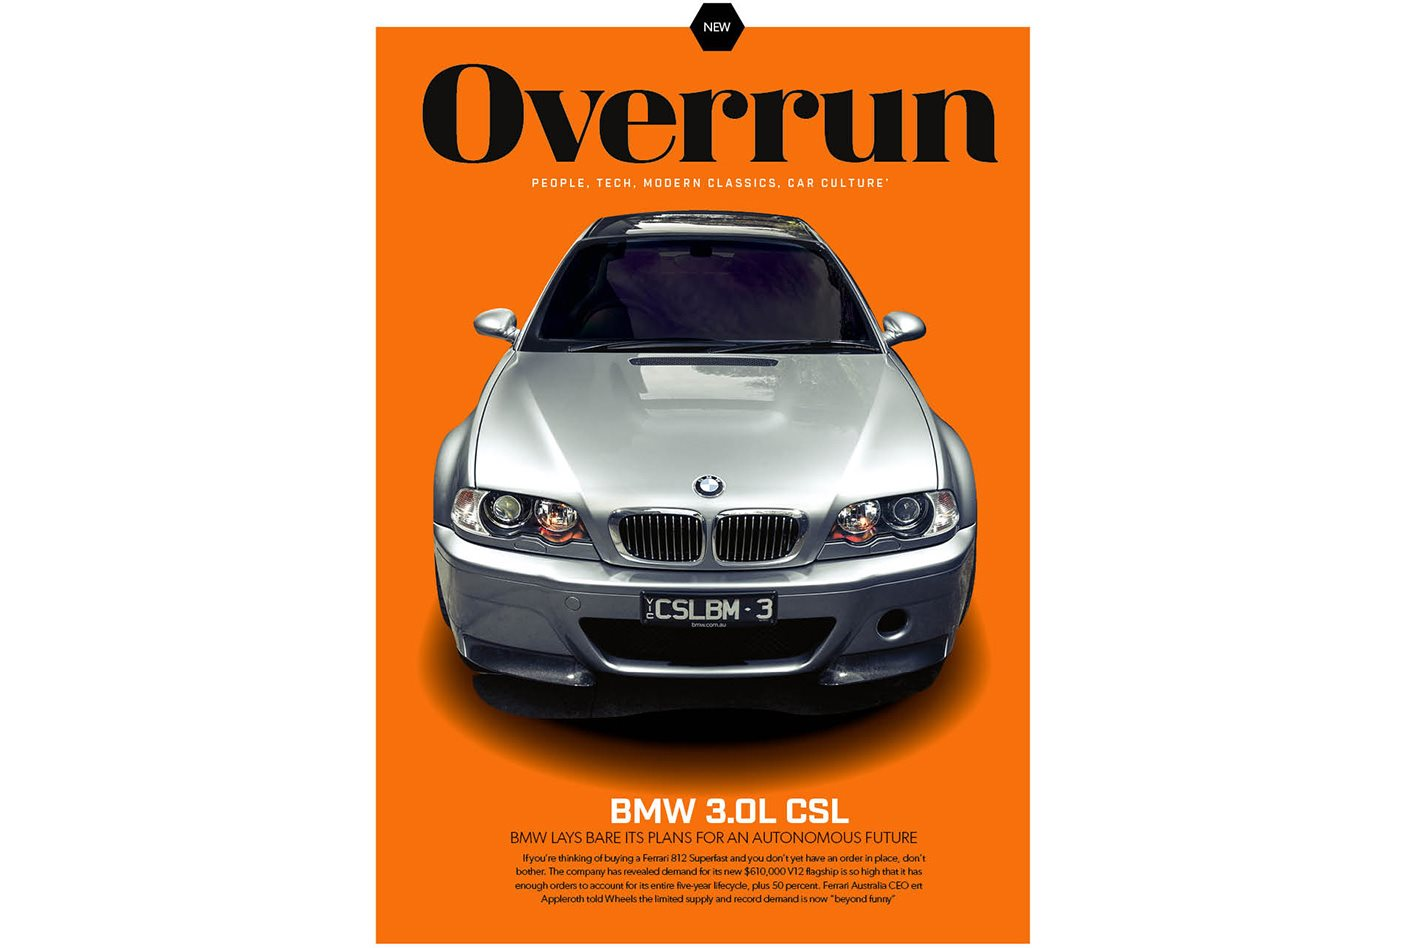 introducing overrun: the newest addition to wheels magazine